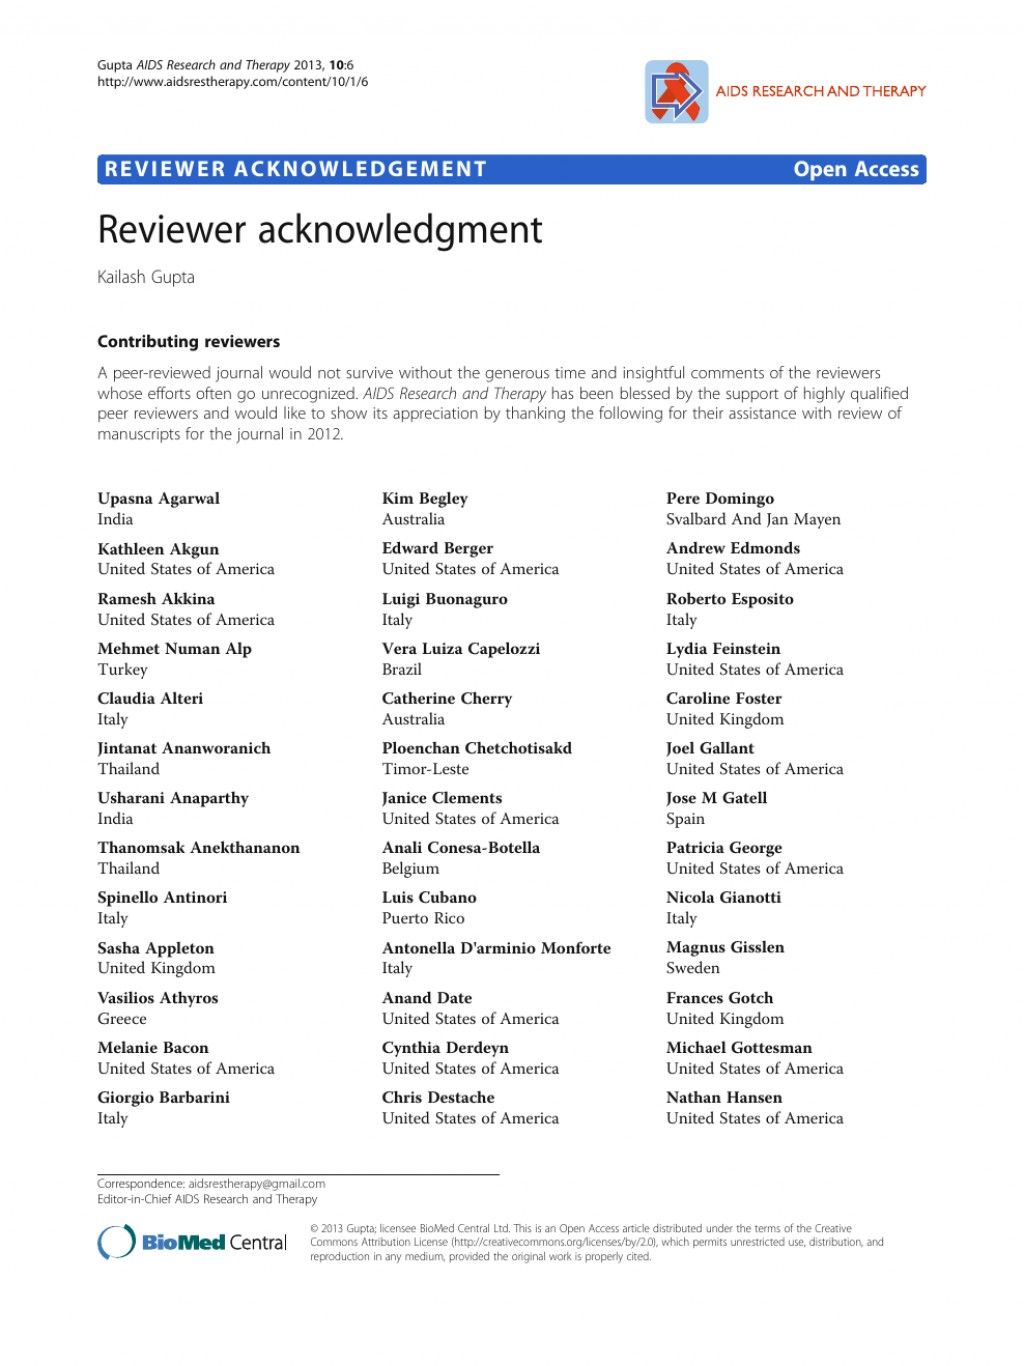 007 Acknowledgement Example For Research Paper Rare Pdf Large